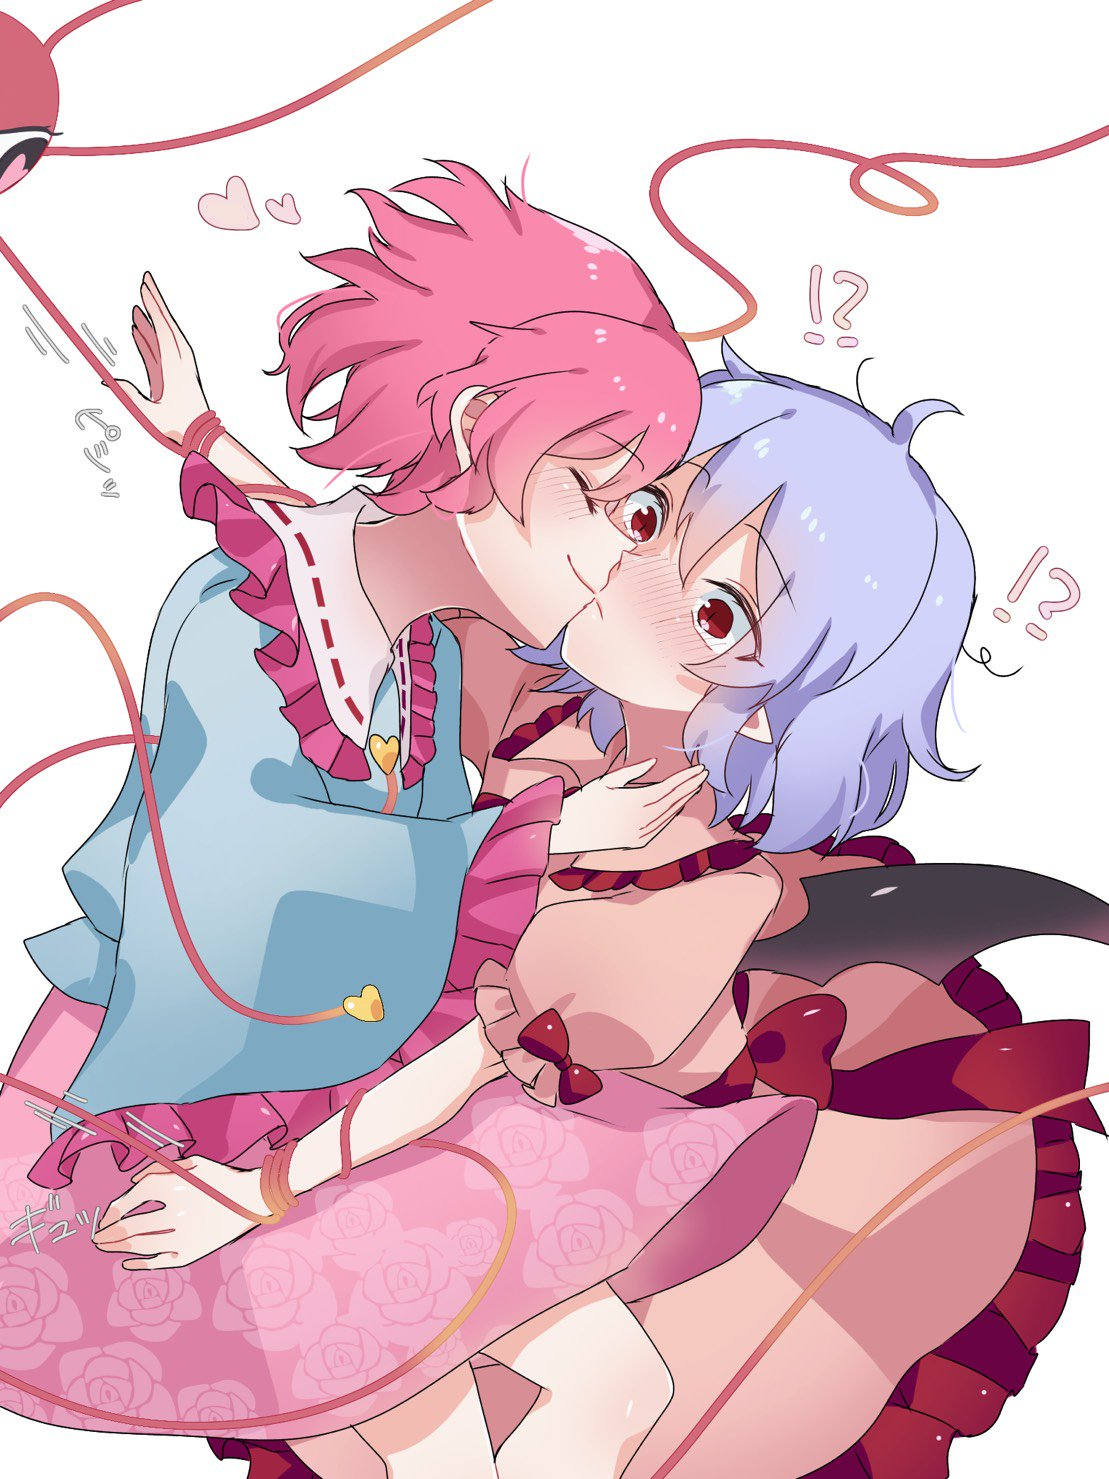 !? 2girls ahoge arm_at_side bangs bat_wings blouse blue_blouse blush bound bow buttons cheek-to-cheek closed_eyes closed_mouth collar collared_dress cowboy_shot dress dress_bow dutch_angle embarrassed eringi_(rmrafrn) eyeball eyebrows_visible_through_hair floral_print frilled_blouse frilled_collar frilled_dress frilled_shirt_collar frilled_sleeves frills hair_between_eyes hand_on_another's_shoulder hand_up heart heart-shaped_pupils highres hug kiss komeiji_satori lavender_hair long_sleeves messy_hair multiple_girls no_hat no_headwear outstretched_arms pink_dress pink_hair pink_skirt pointy_ears profile puffy_short_sleeves puffy_sleeves red_bow red_eyes remilia_scarlet restrained ribbon-trimmed_collar ribbon_trim rose_print sash shiny shiny_clothes shiny_hair shiny_skin short_hair short_sleeves sidelocks simple_background skirt slit_pupils symbol-shaped_pupils third_eye tied_up touhou white_background wide_sleeves wings wrist_grab yuri